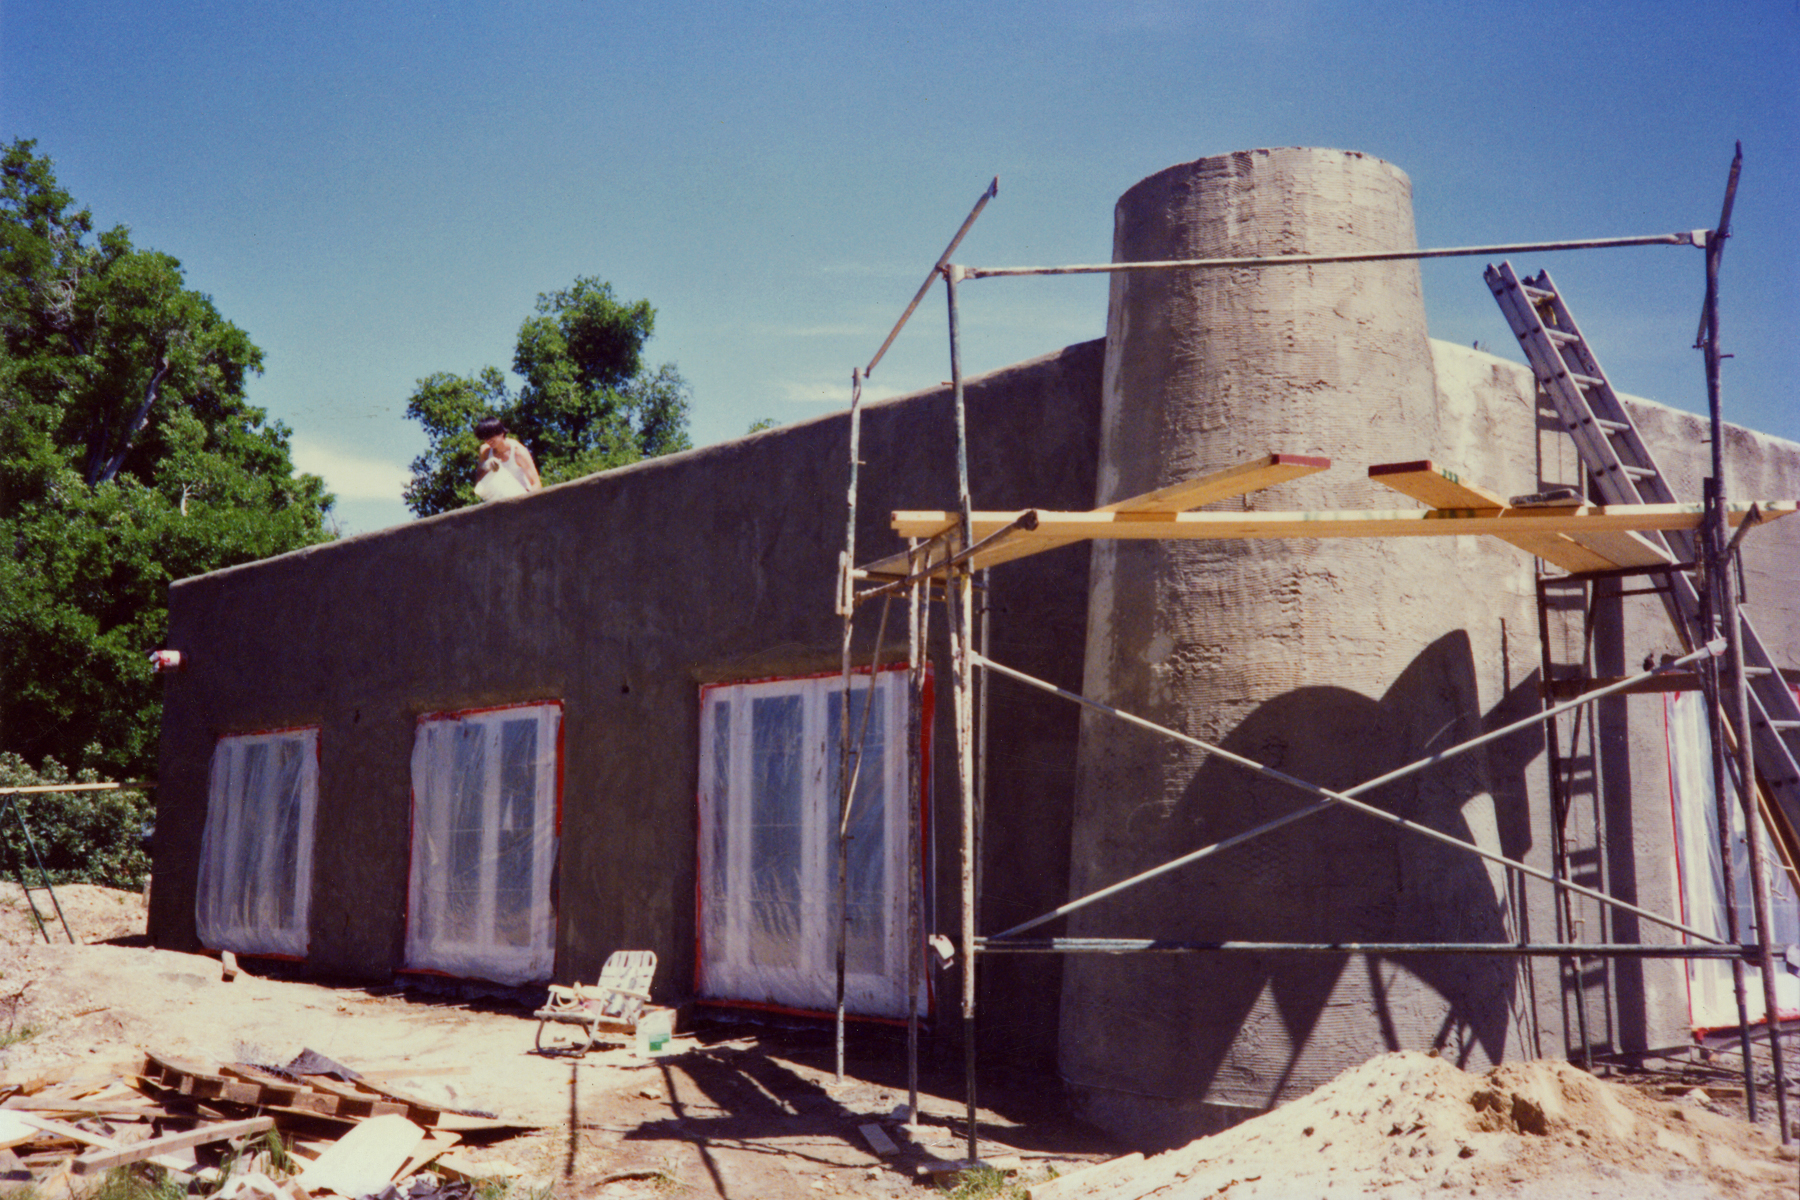 CONSTRUCTION of the Visitor Center and Caretaker Quarters in 1993.